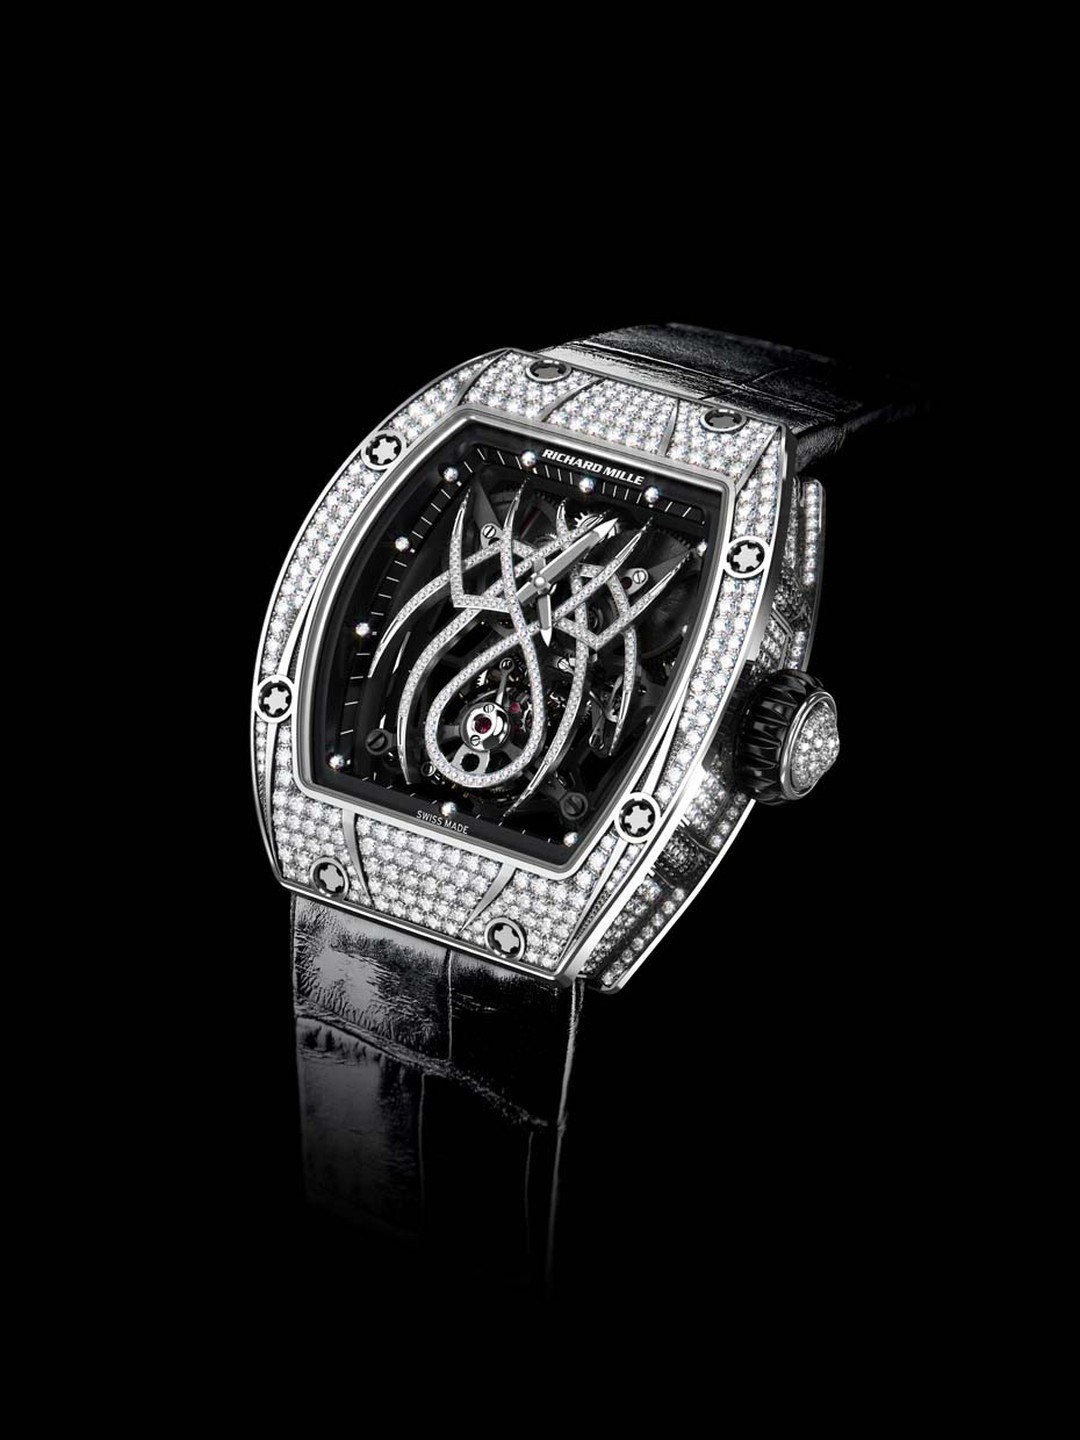 Designed in collaboration with Natalie Portman, the tourbillon movement in the Richard Mille RM 19-01 watch features a diamond-set spider that spreads his tapered legs across the dial while his abdomen holds the tourbillon cage.